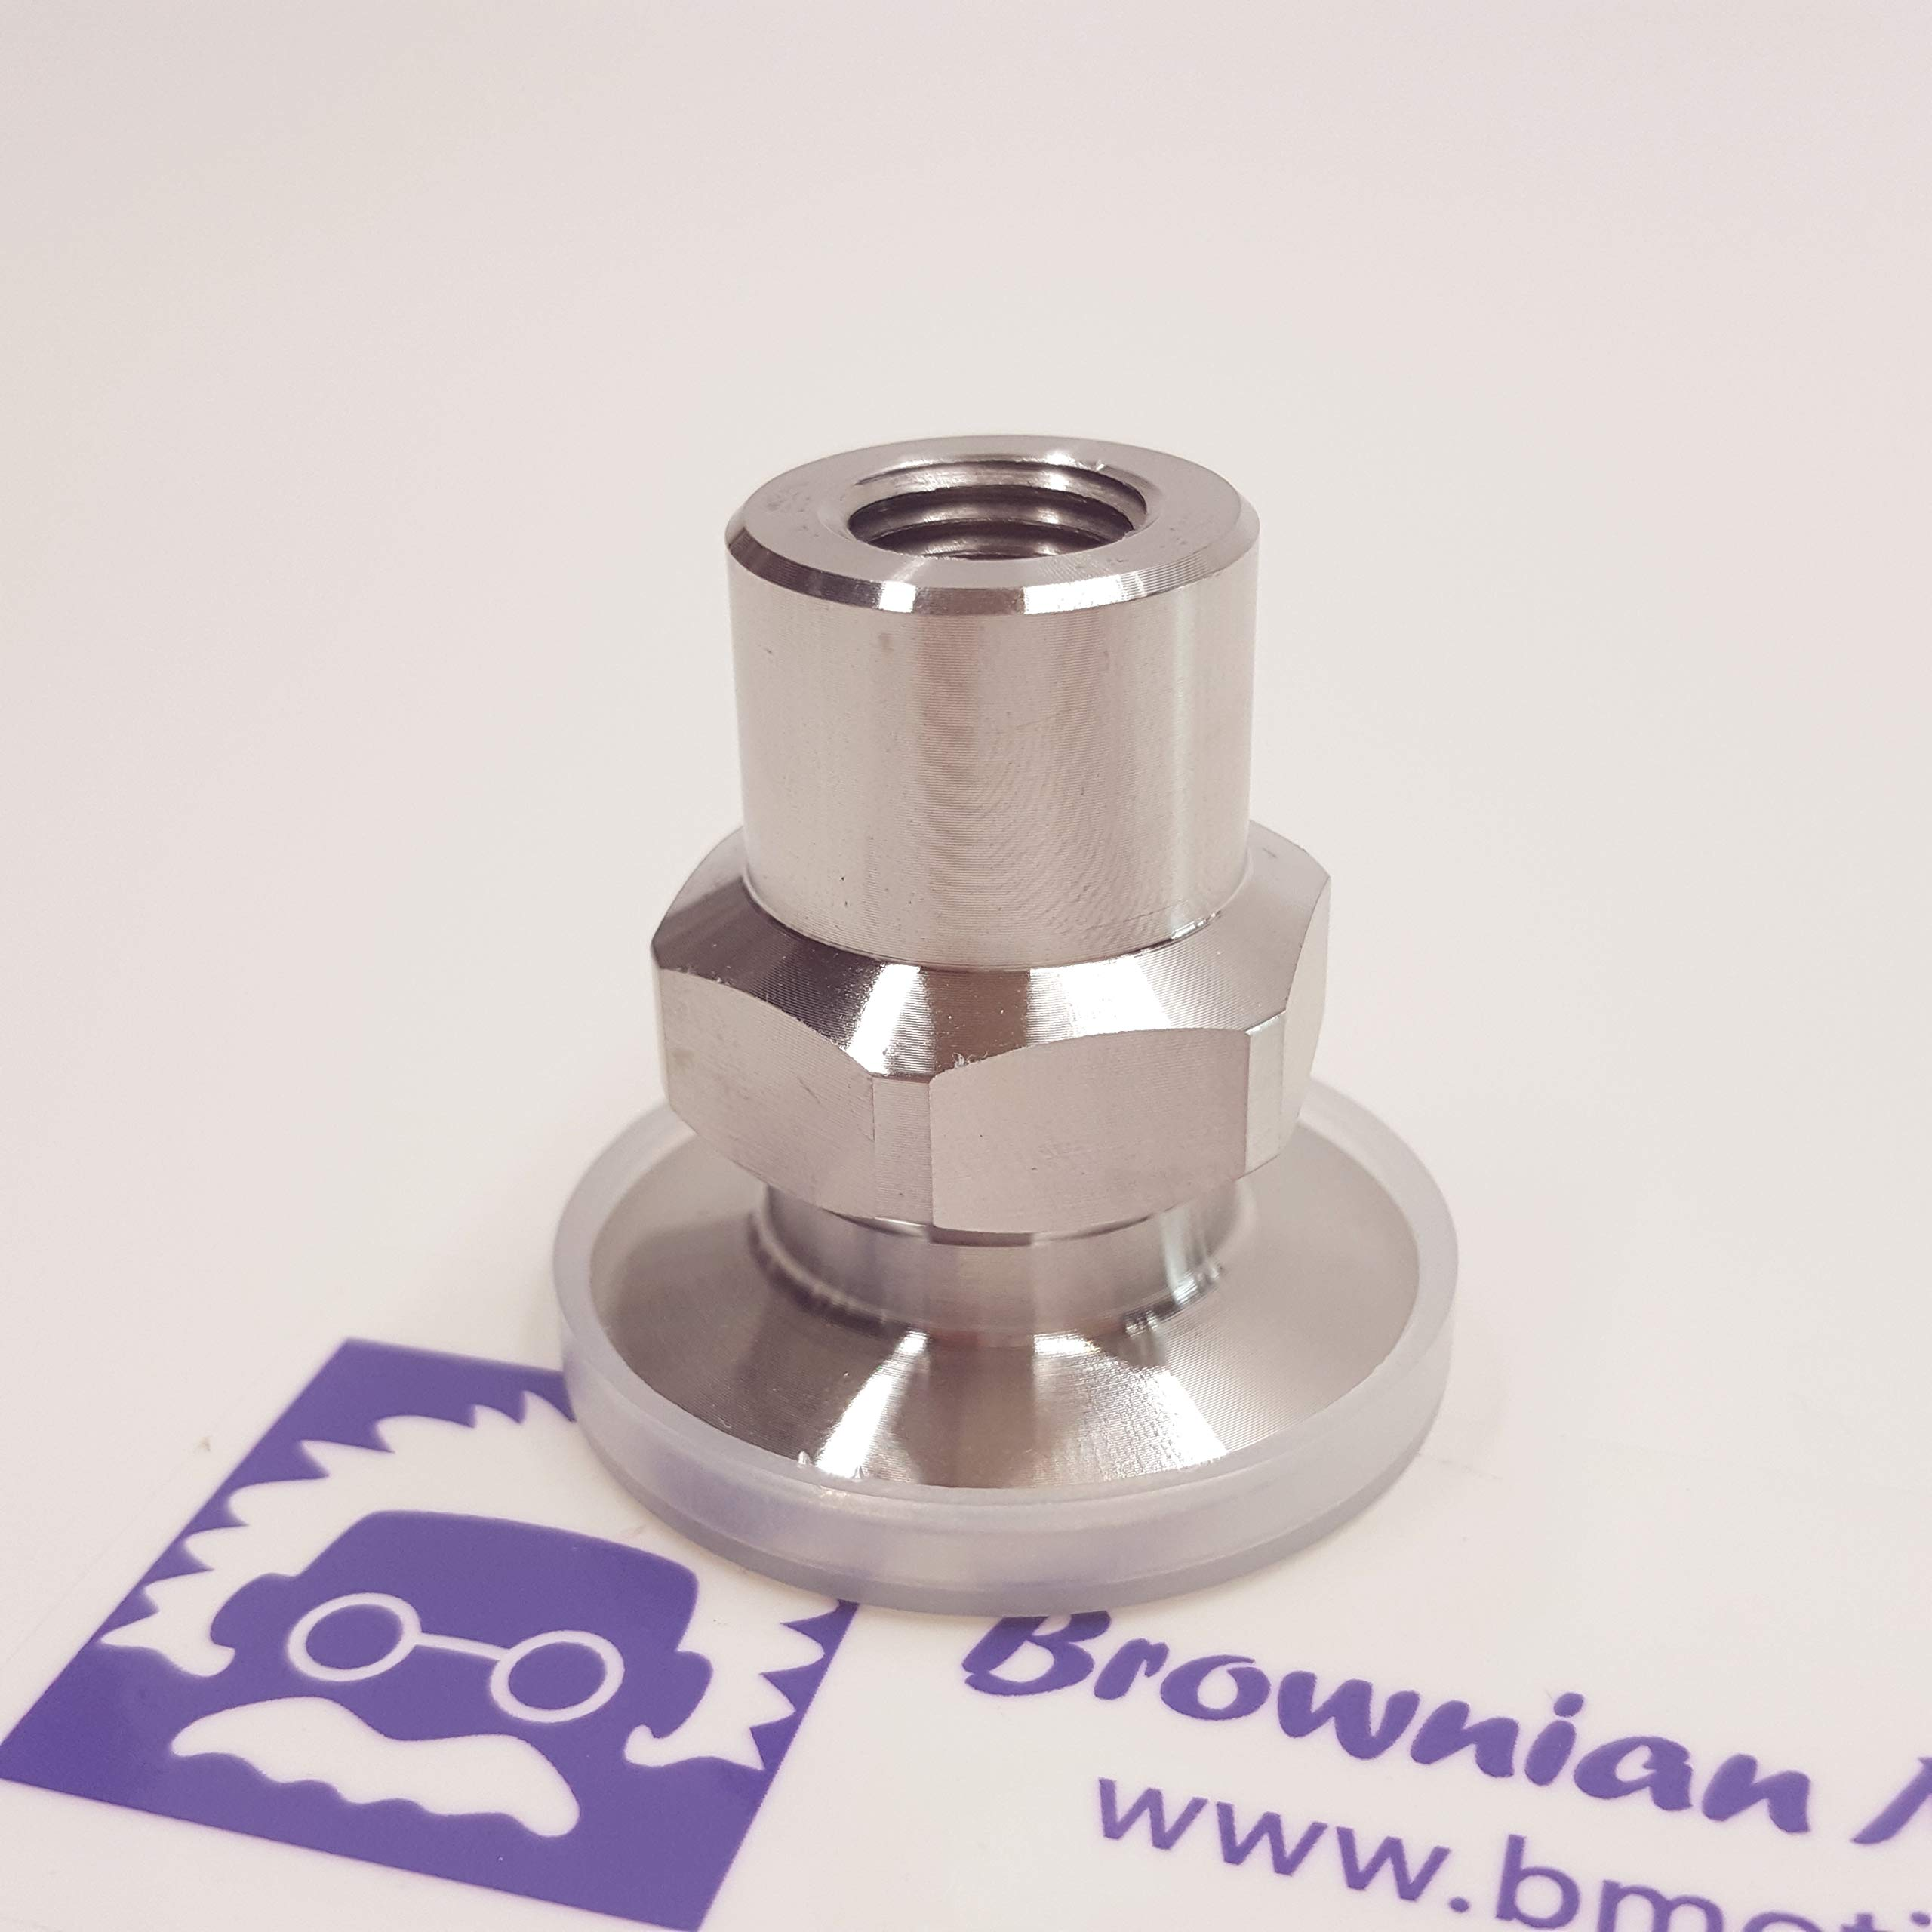 """_BMT_ True 1/4"""" FNPT X KF25 Flange Vacuum Adapter, Made of SS304, Strictly Follow NPT Standard, 18 Threads per inch, 60 Degree Thread Angle"""